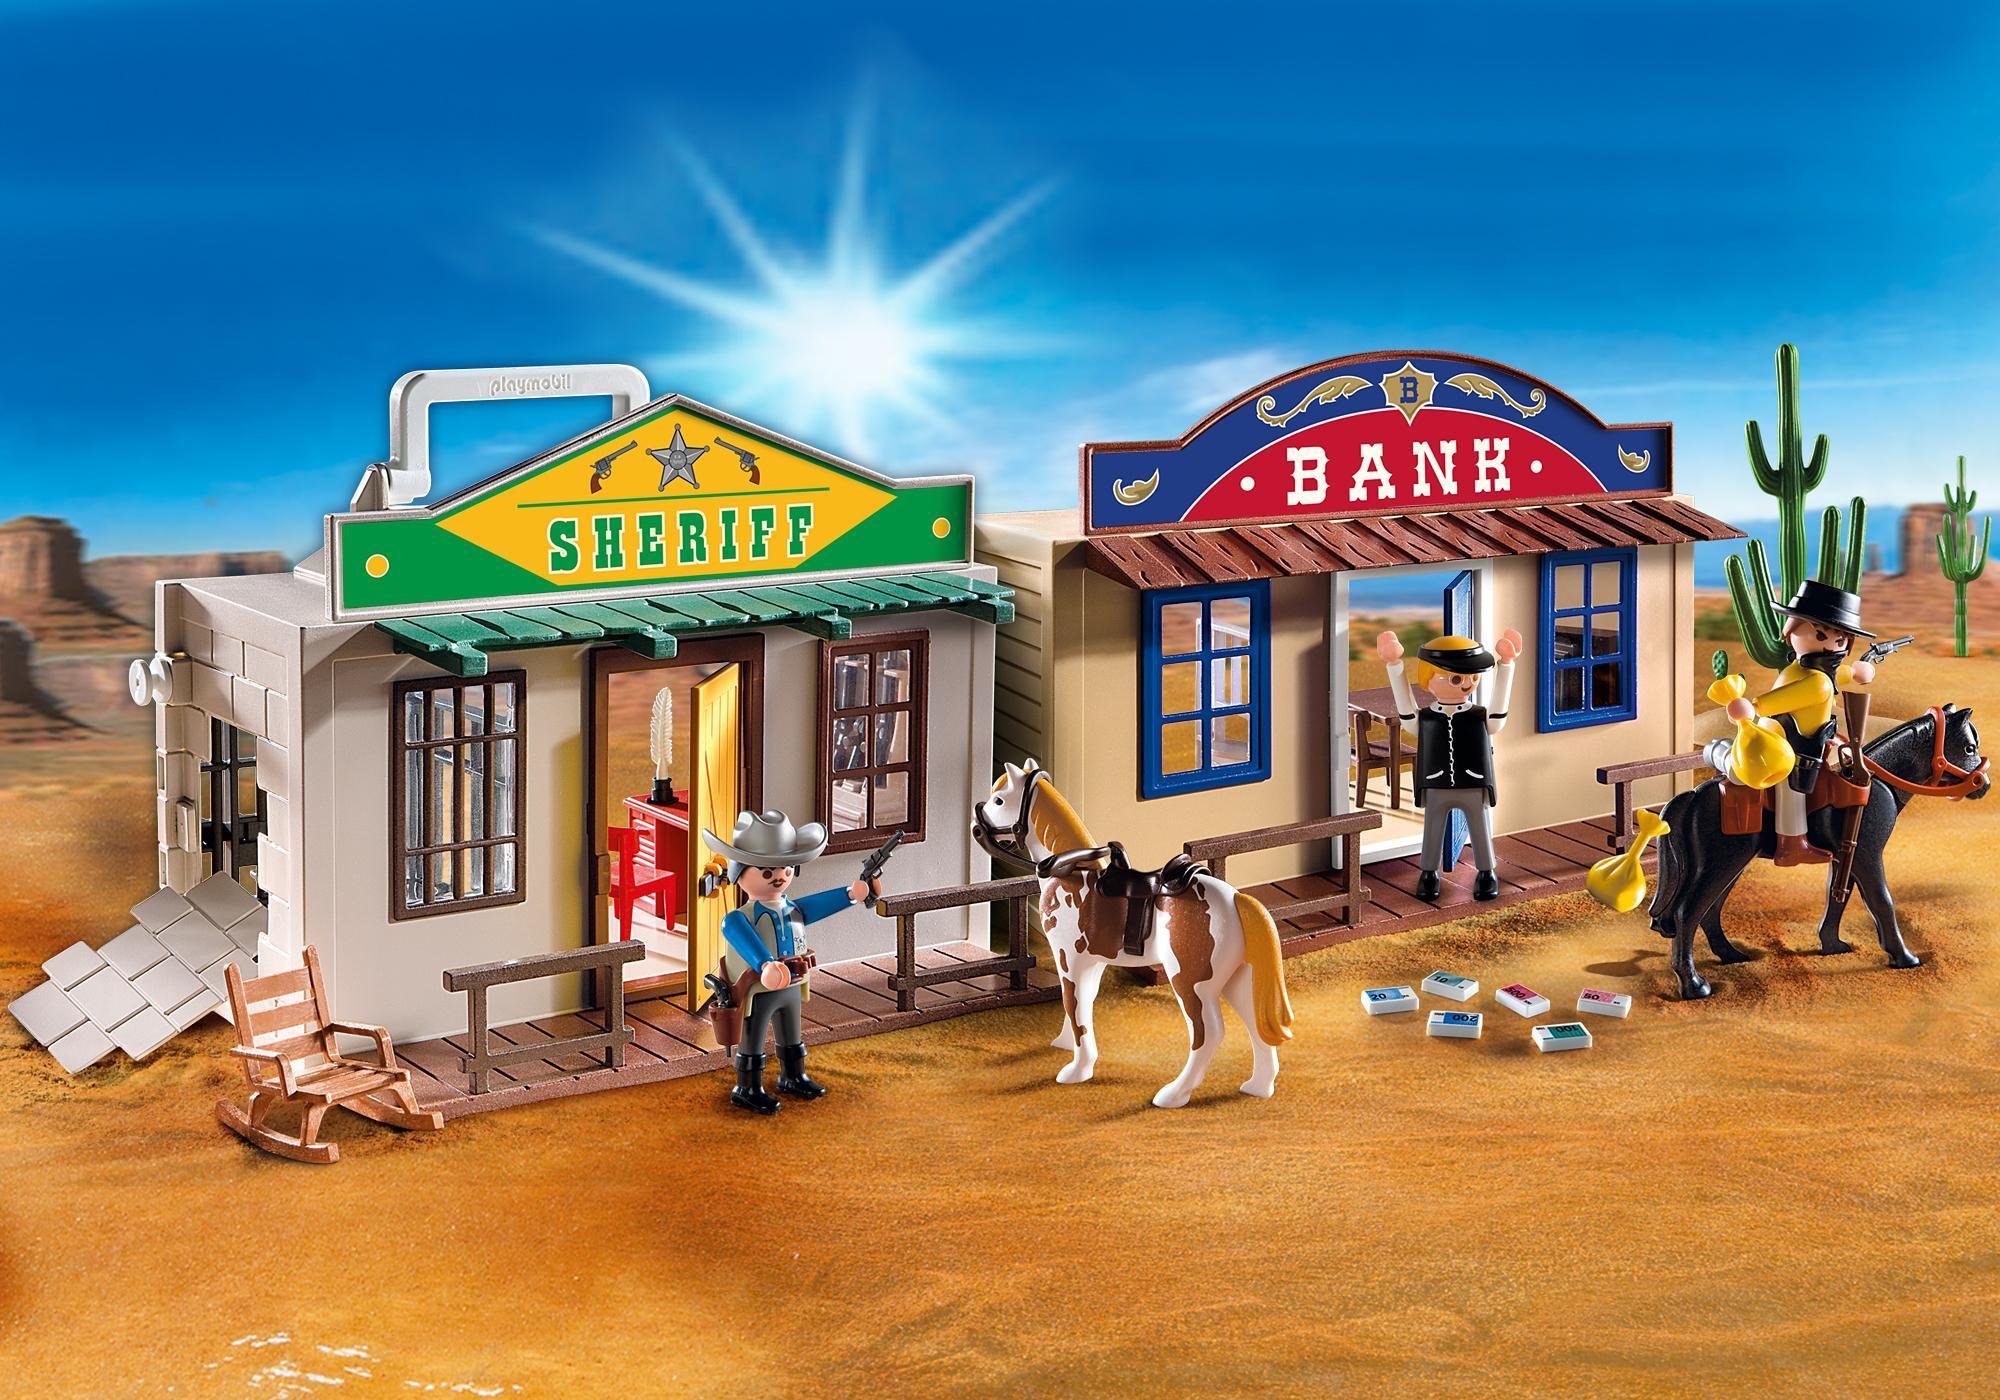 http://media.playmobil.com/i/playmobil/4398_product_detail/Mitnehm-WesternCity